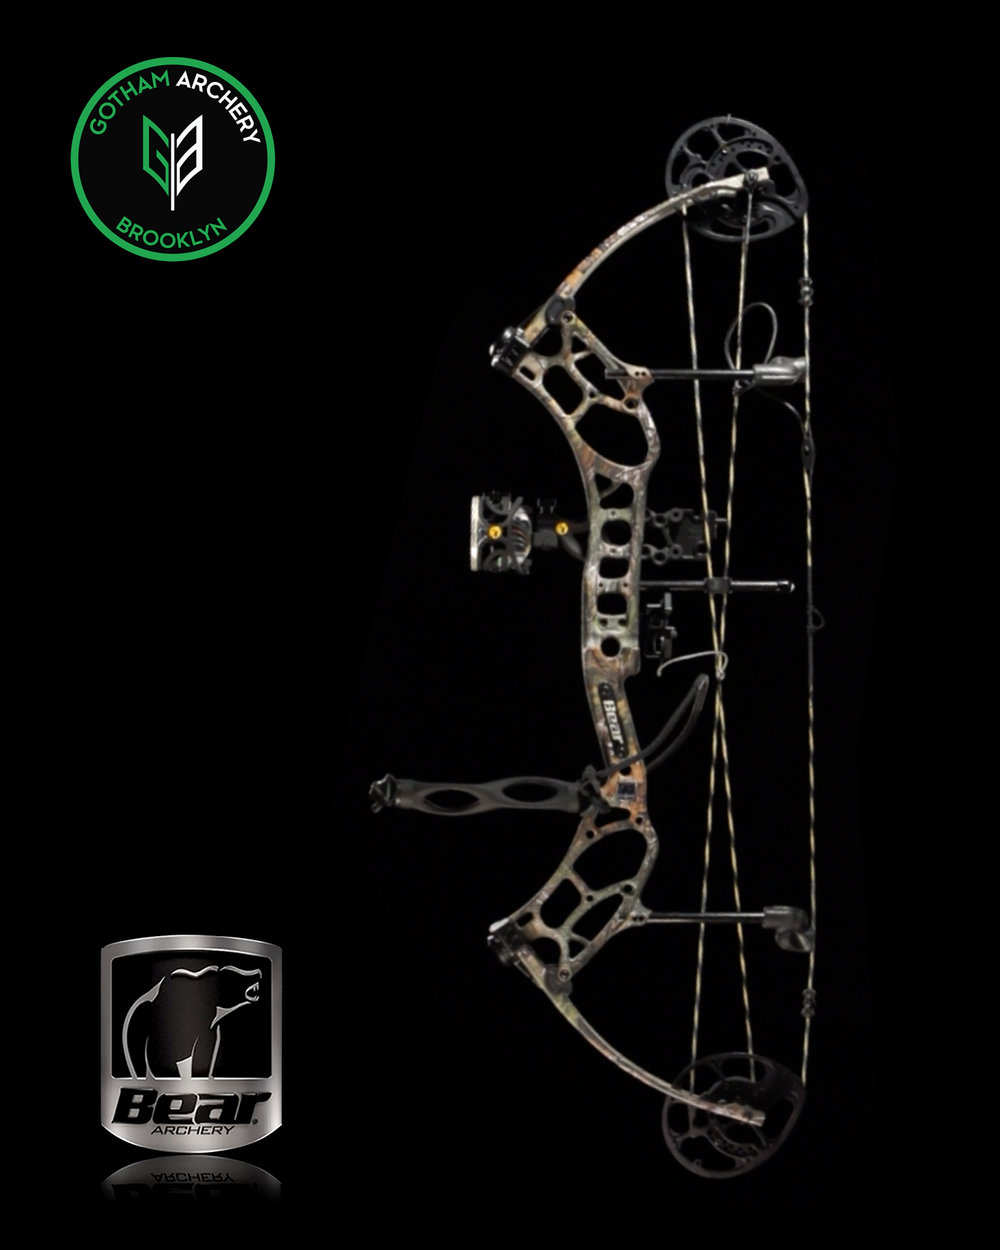 Gotham Archery Bear Legend Series LS2